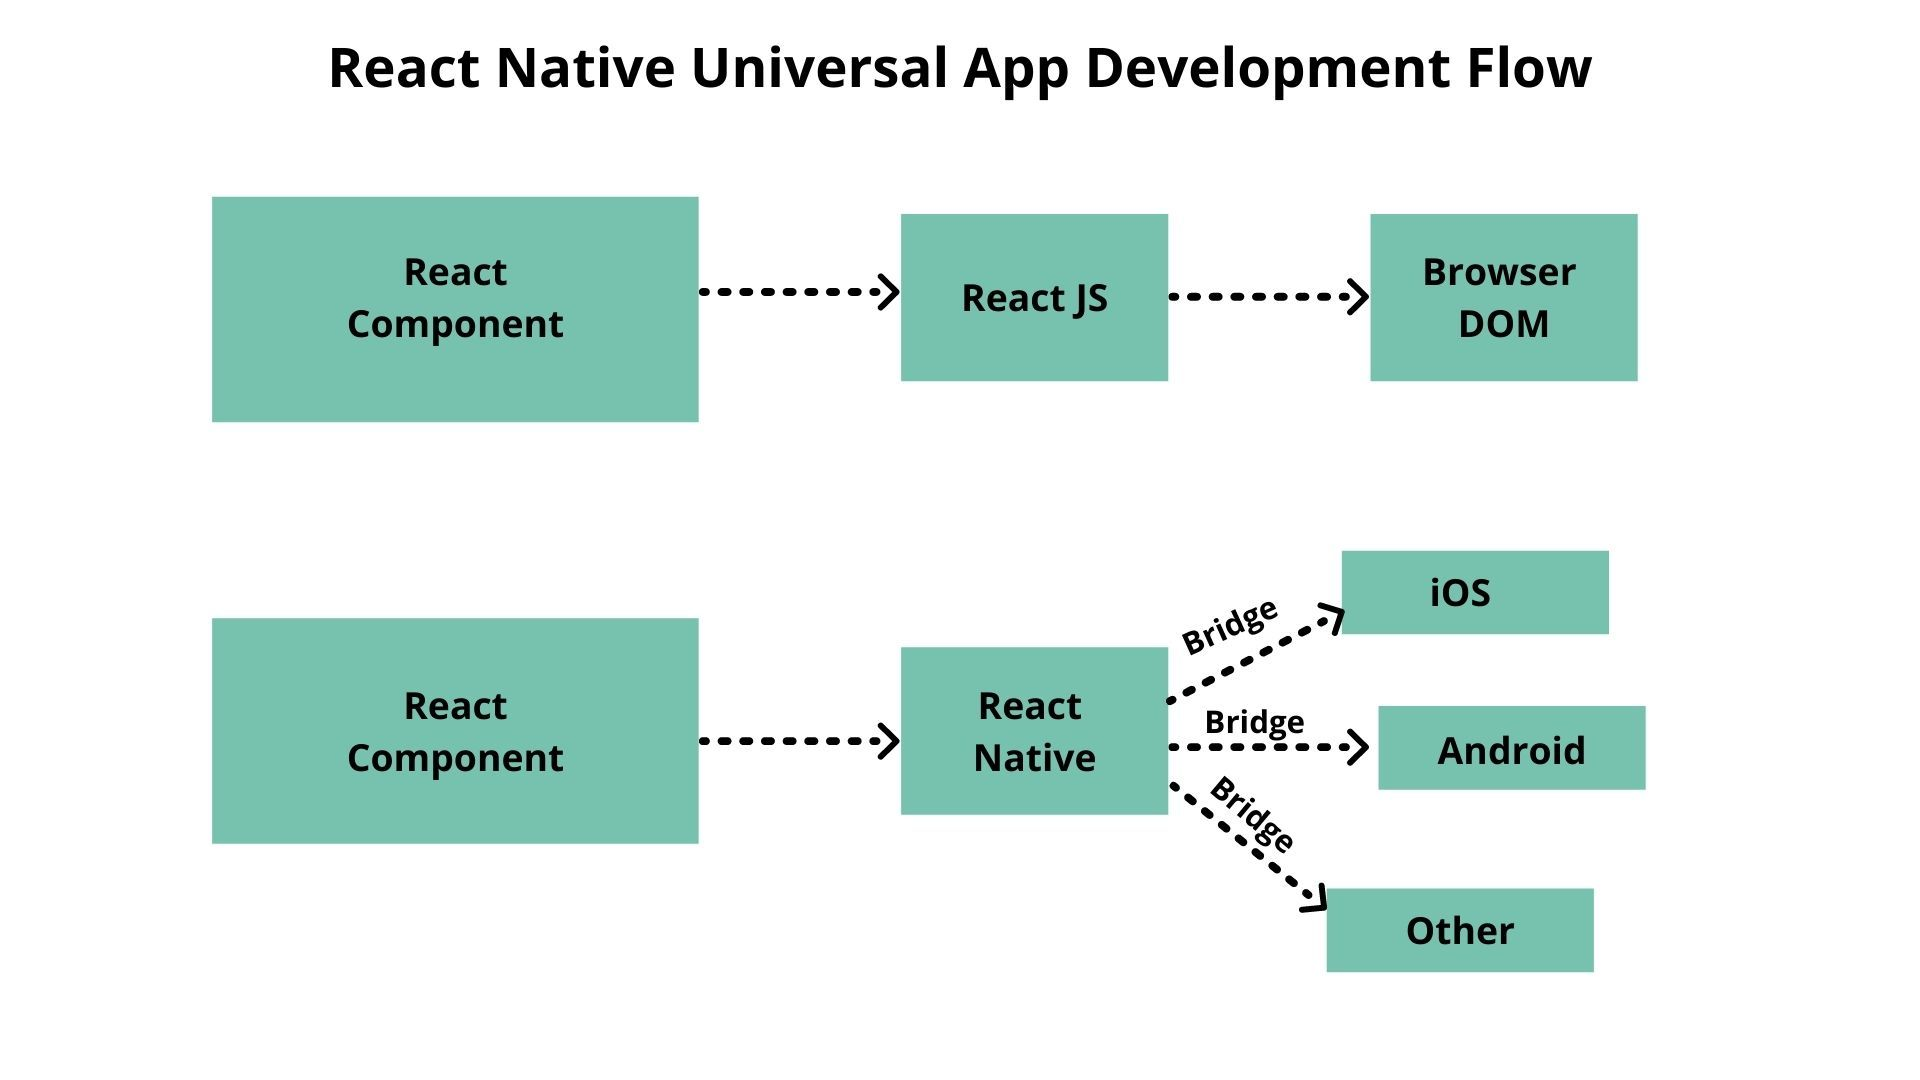 A flow chart that shows how to use React Native to build universal applications.